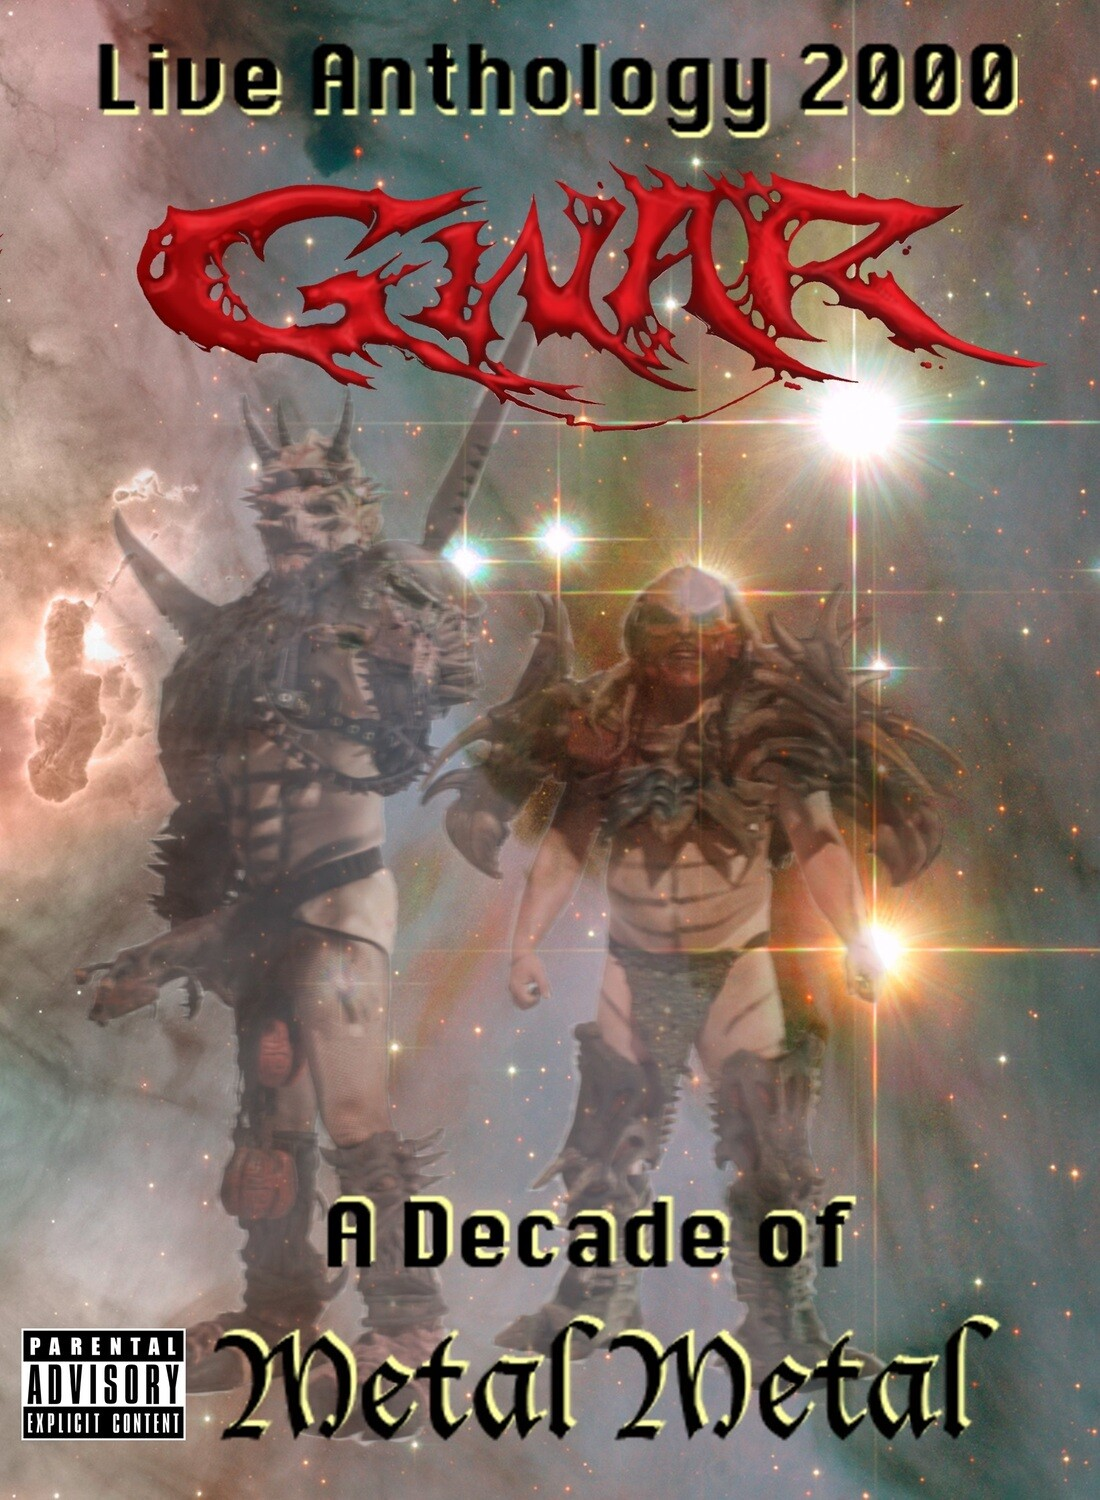 GWAR Live Anthology 2000 - A Decade of Metal DVD Box Set